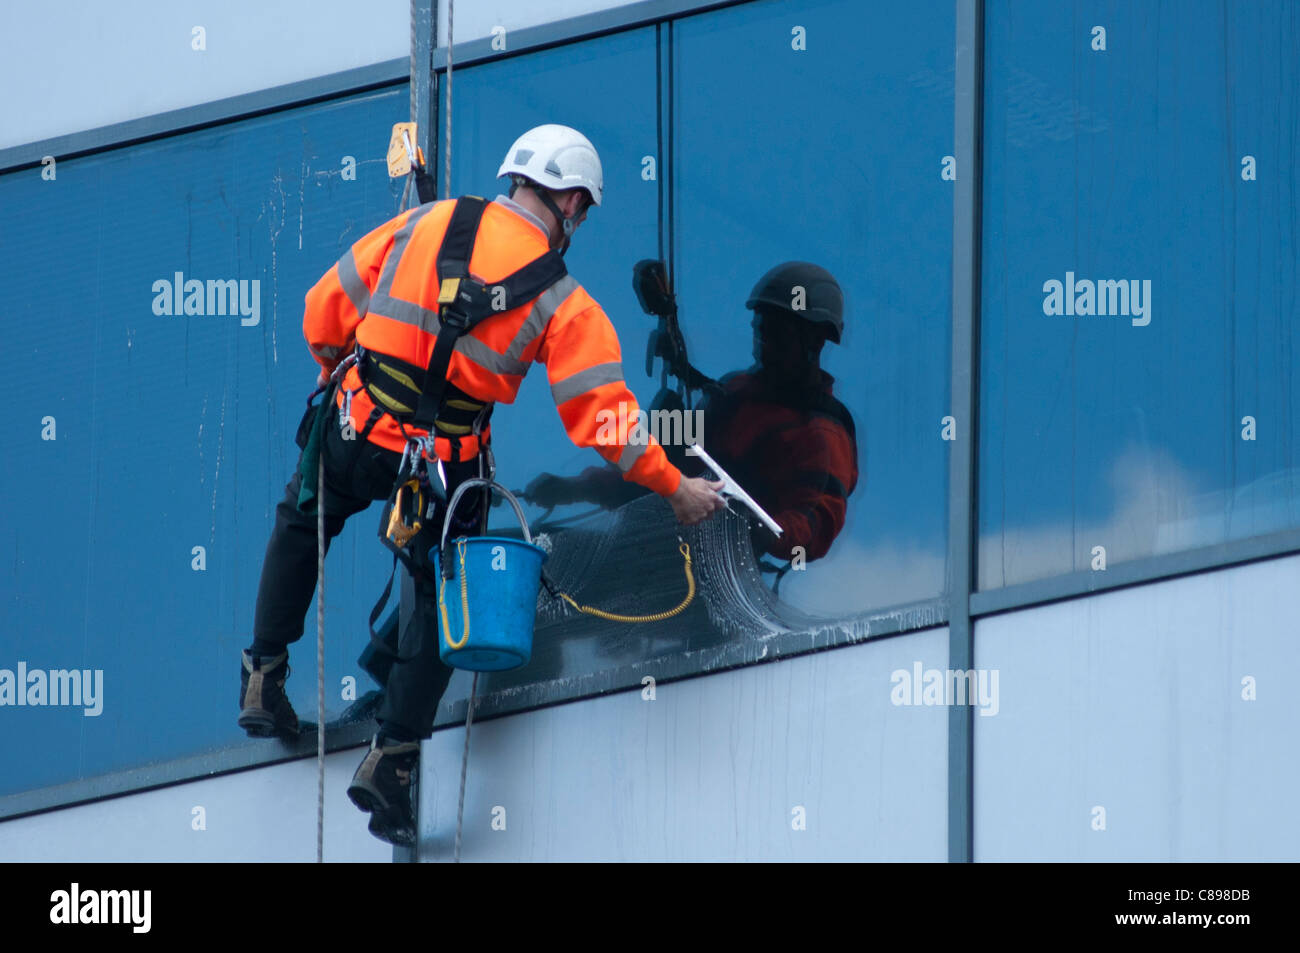 A window cleaner at work on an office building in Birmingham, UK. - Stock Image